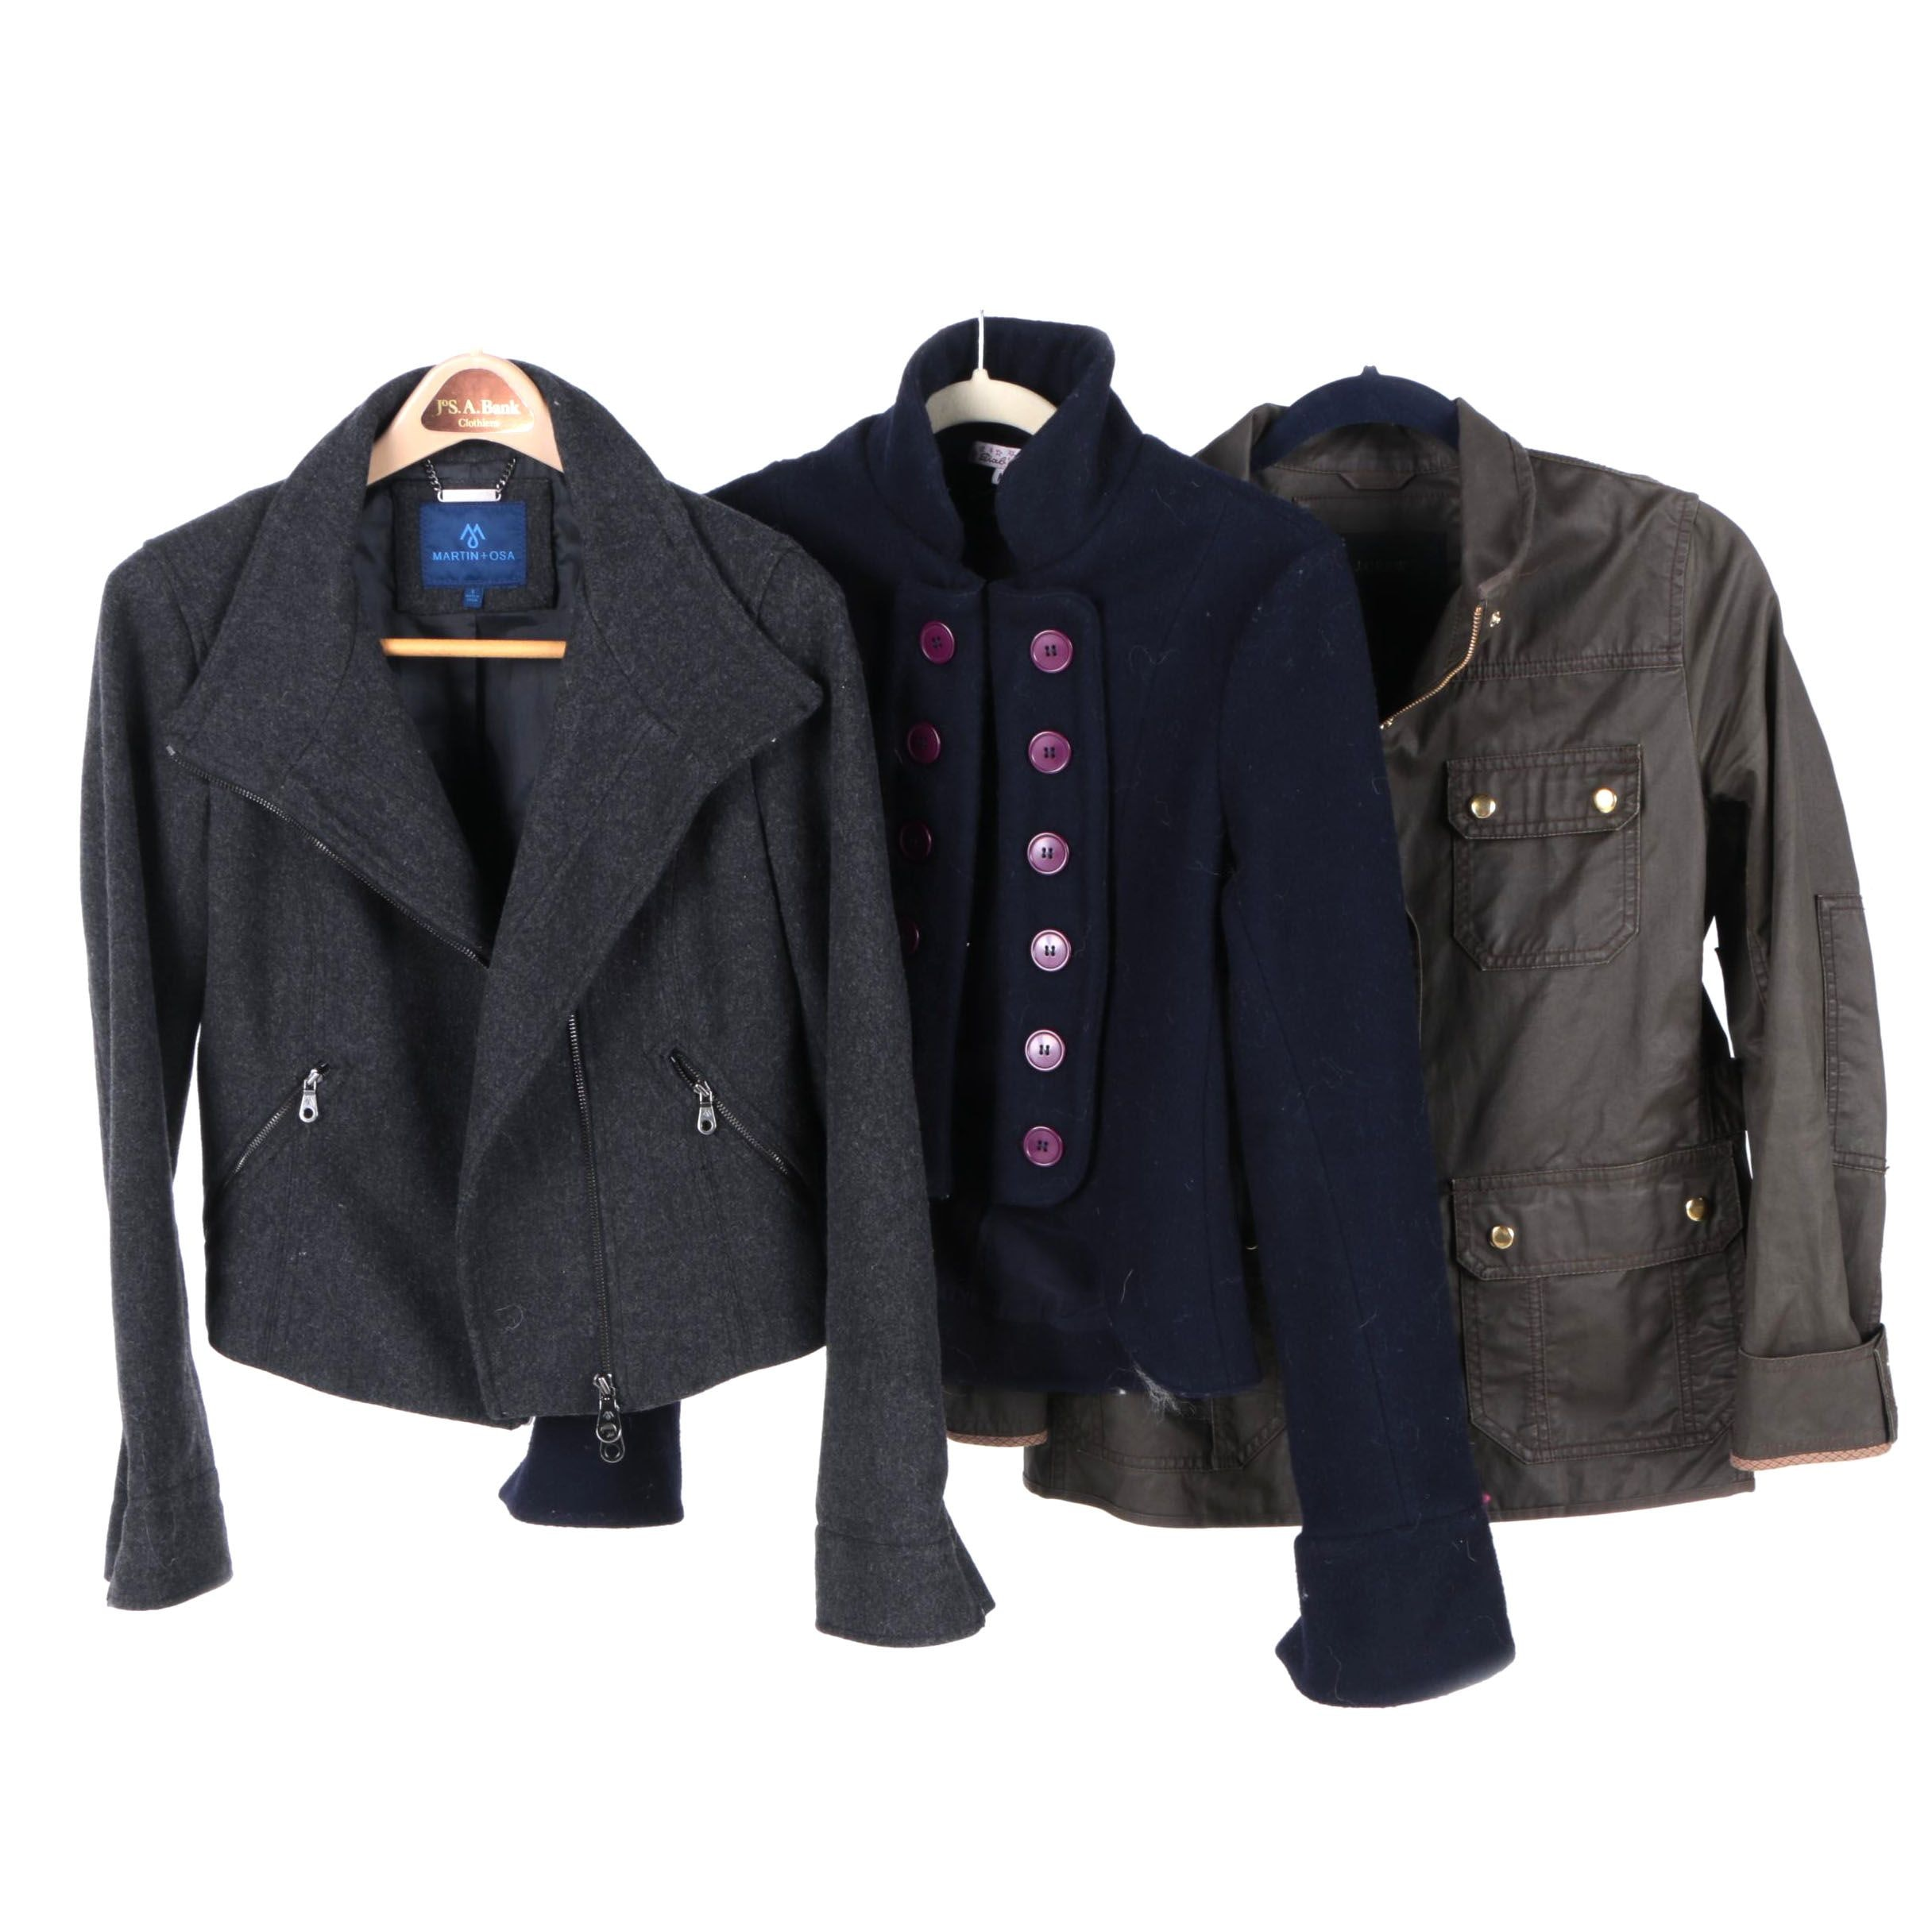 Women's Coats and Jackets Including J. Crew